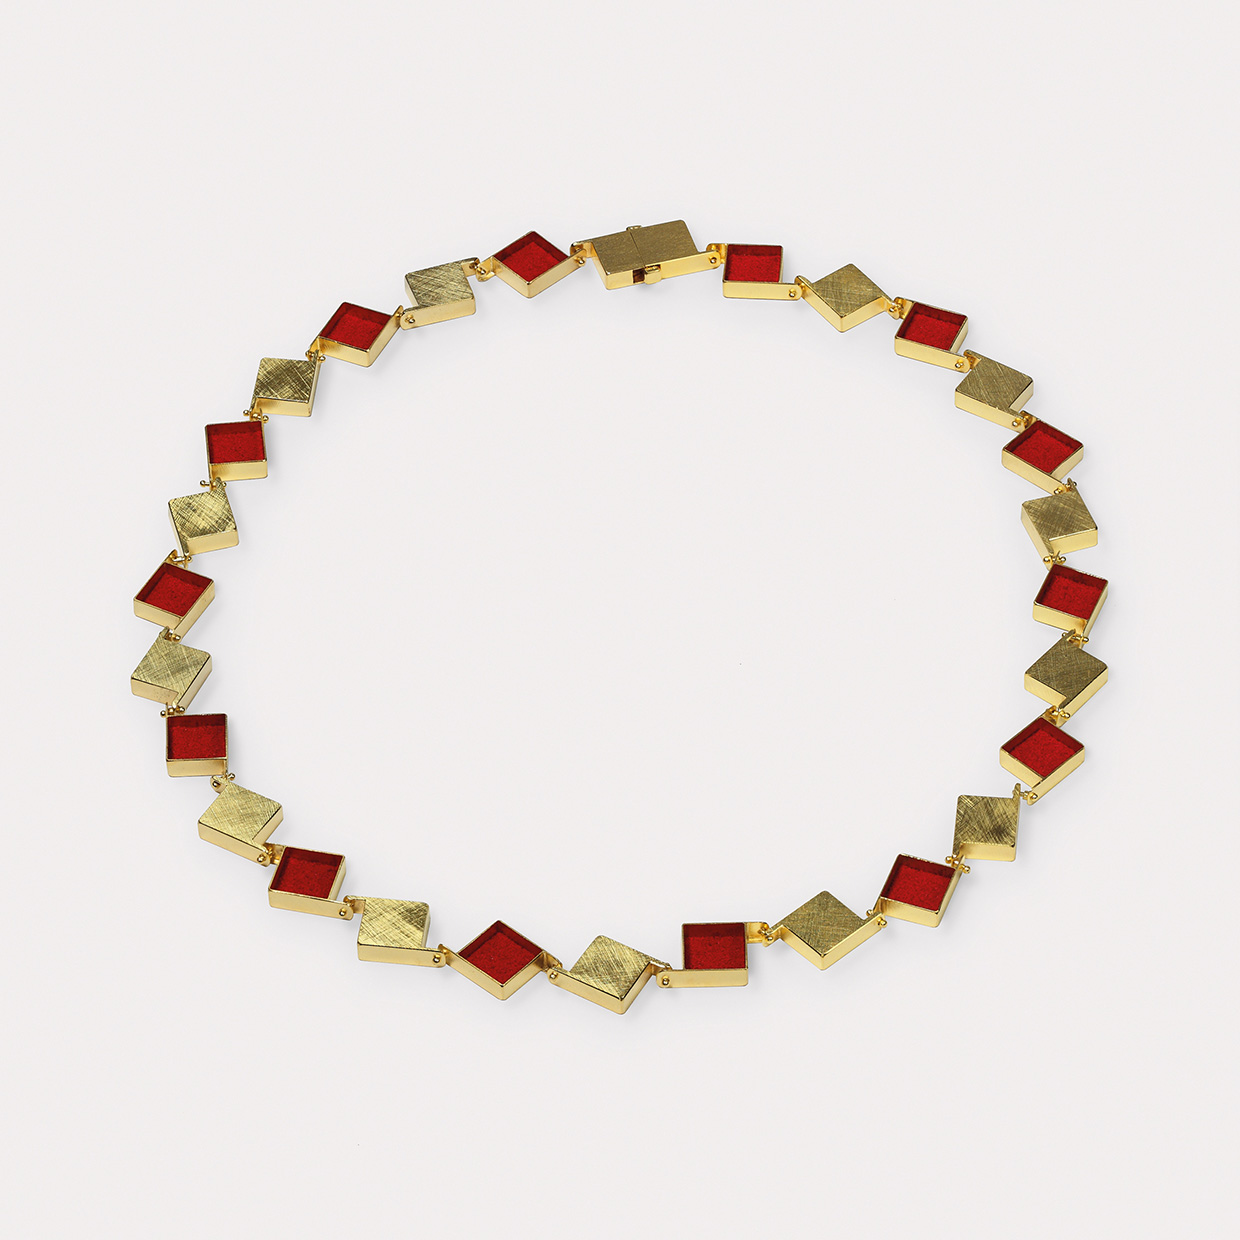 Kette  2015  Gold  750  rotes  Farbpigment  510x10x4  mm